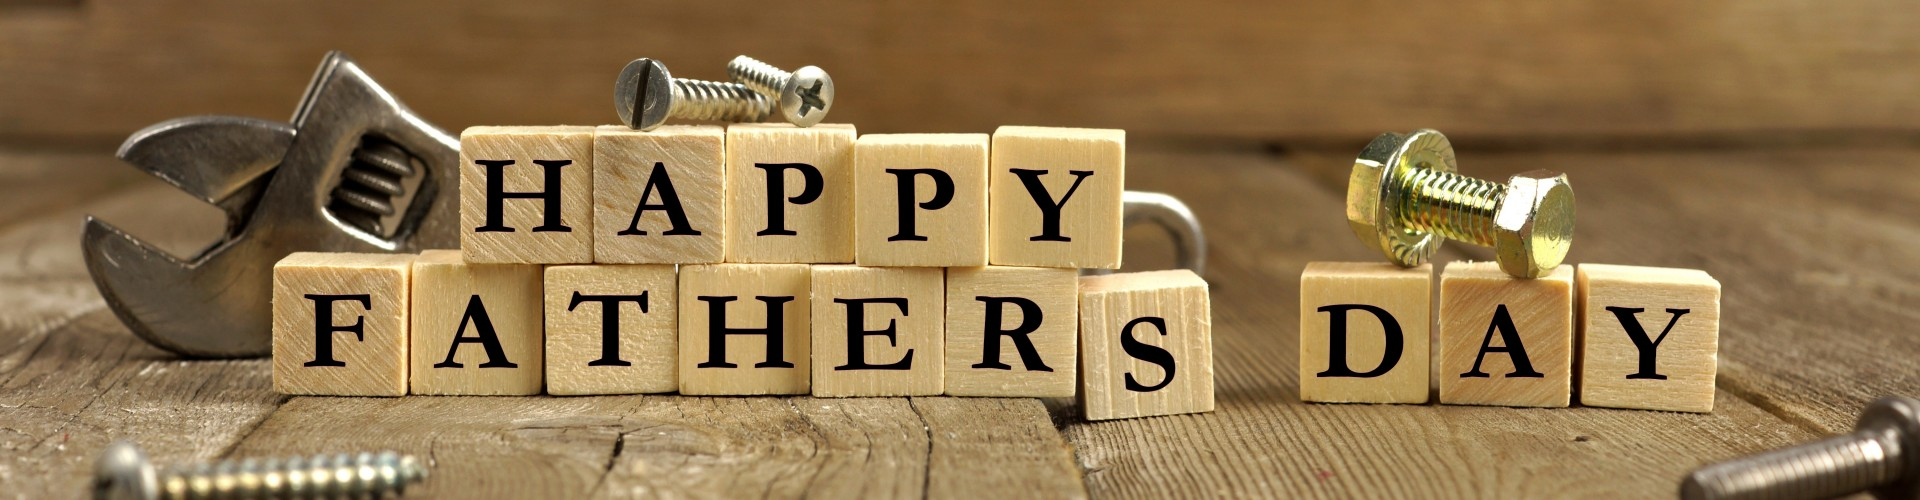 fathers day specials ad